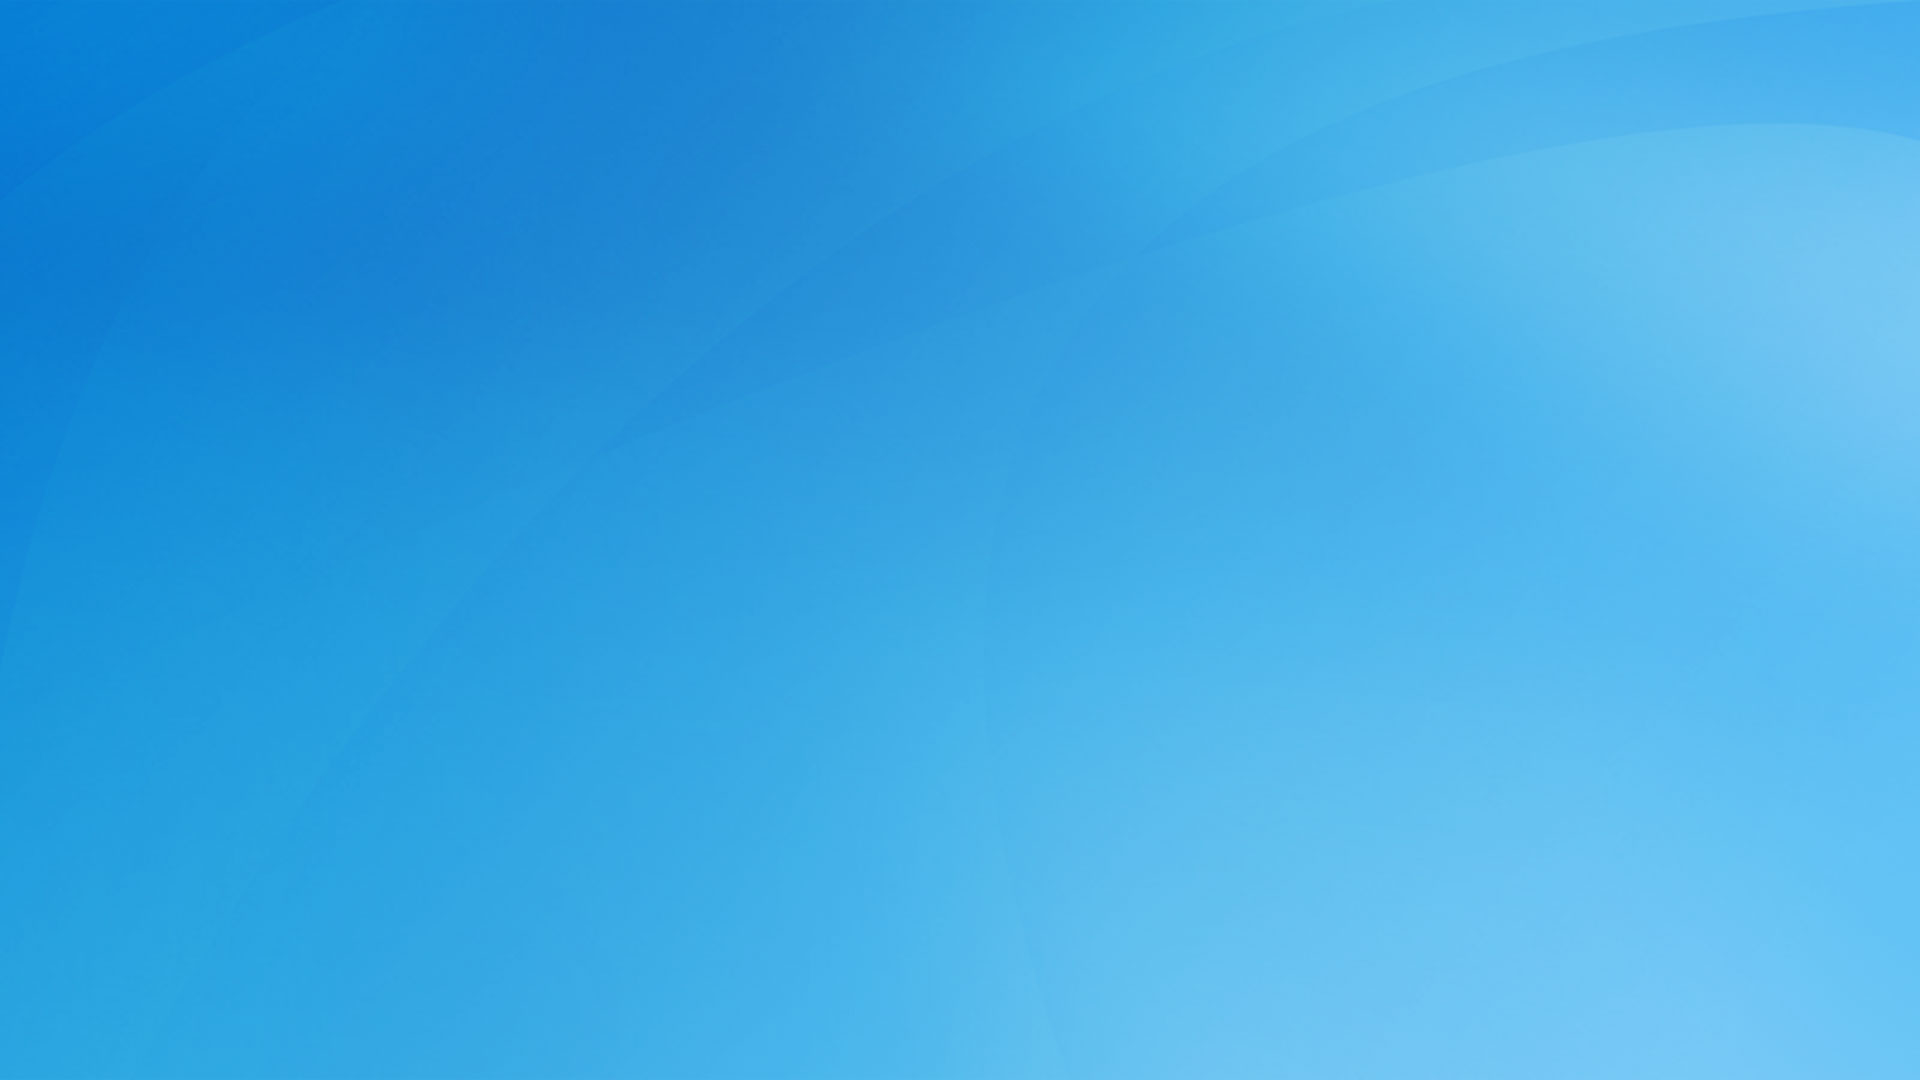 plain light blue wallpaper 46971 1920x1080 px